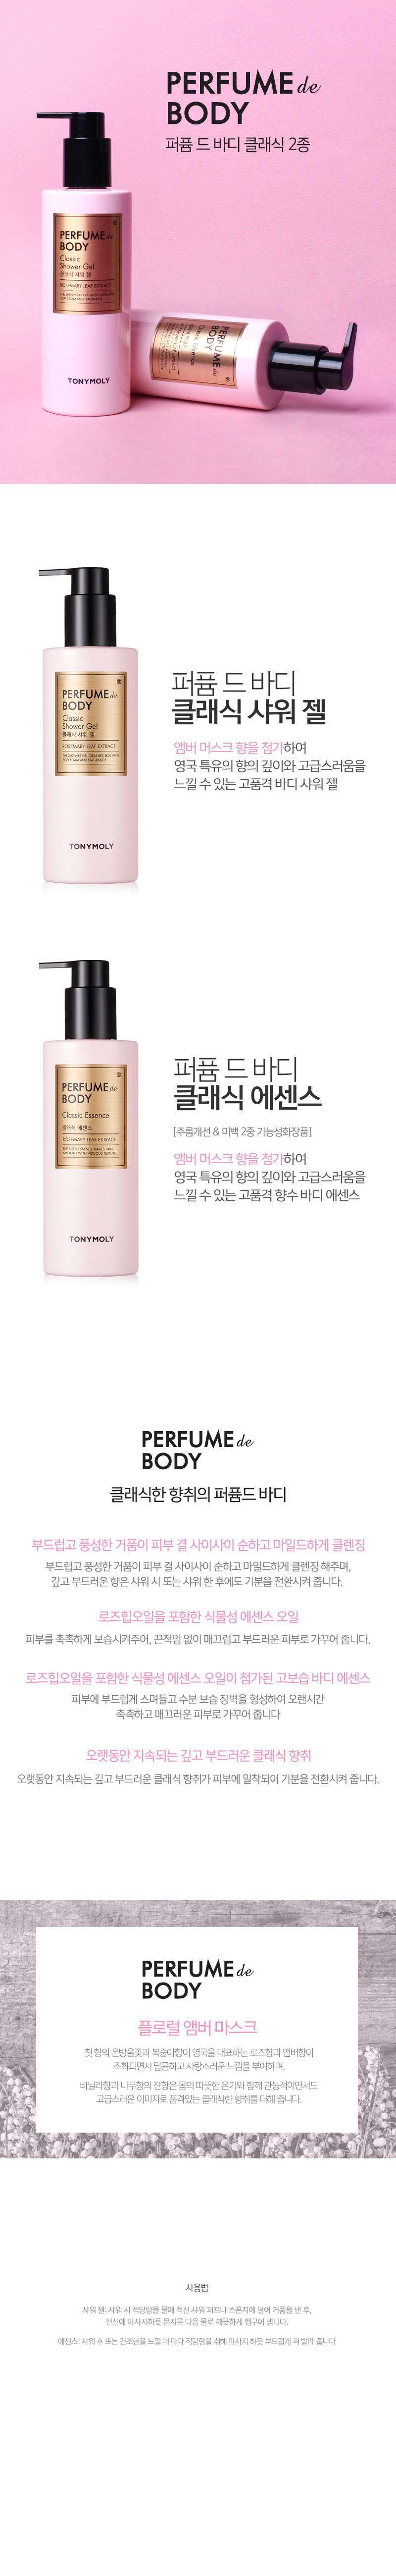 Tony Moly Perfume De Body Grace Classic Essence 300ml malaysia singapore indonesia